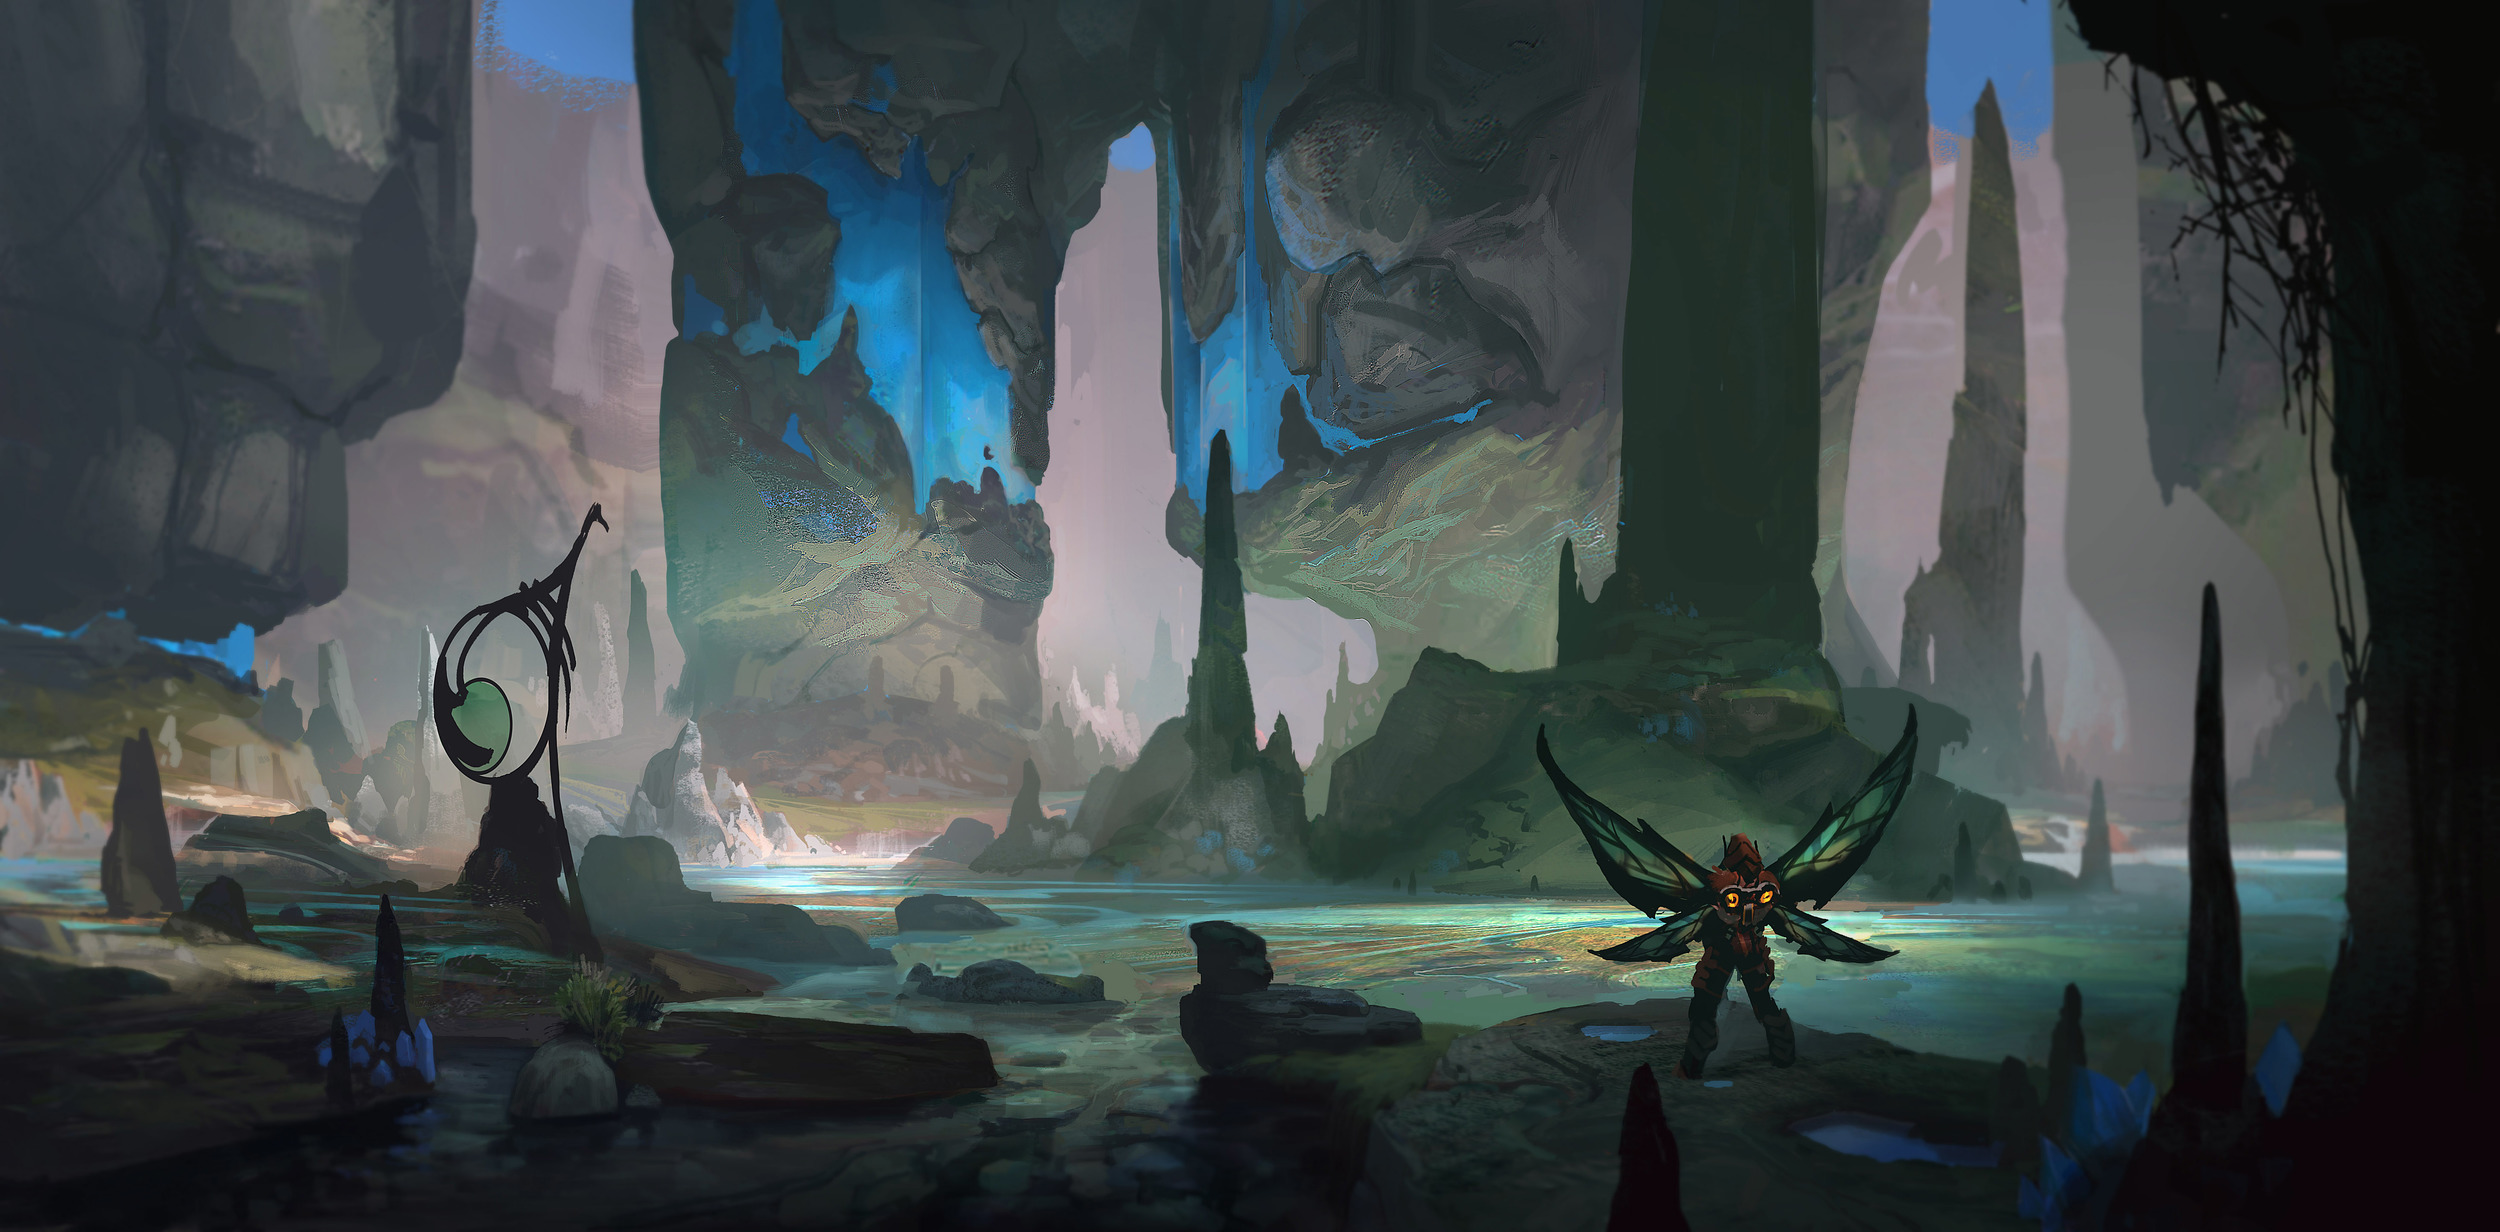 __003_ingame-paintover-actual-world-005.jpg